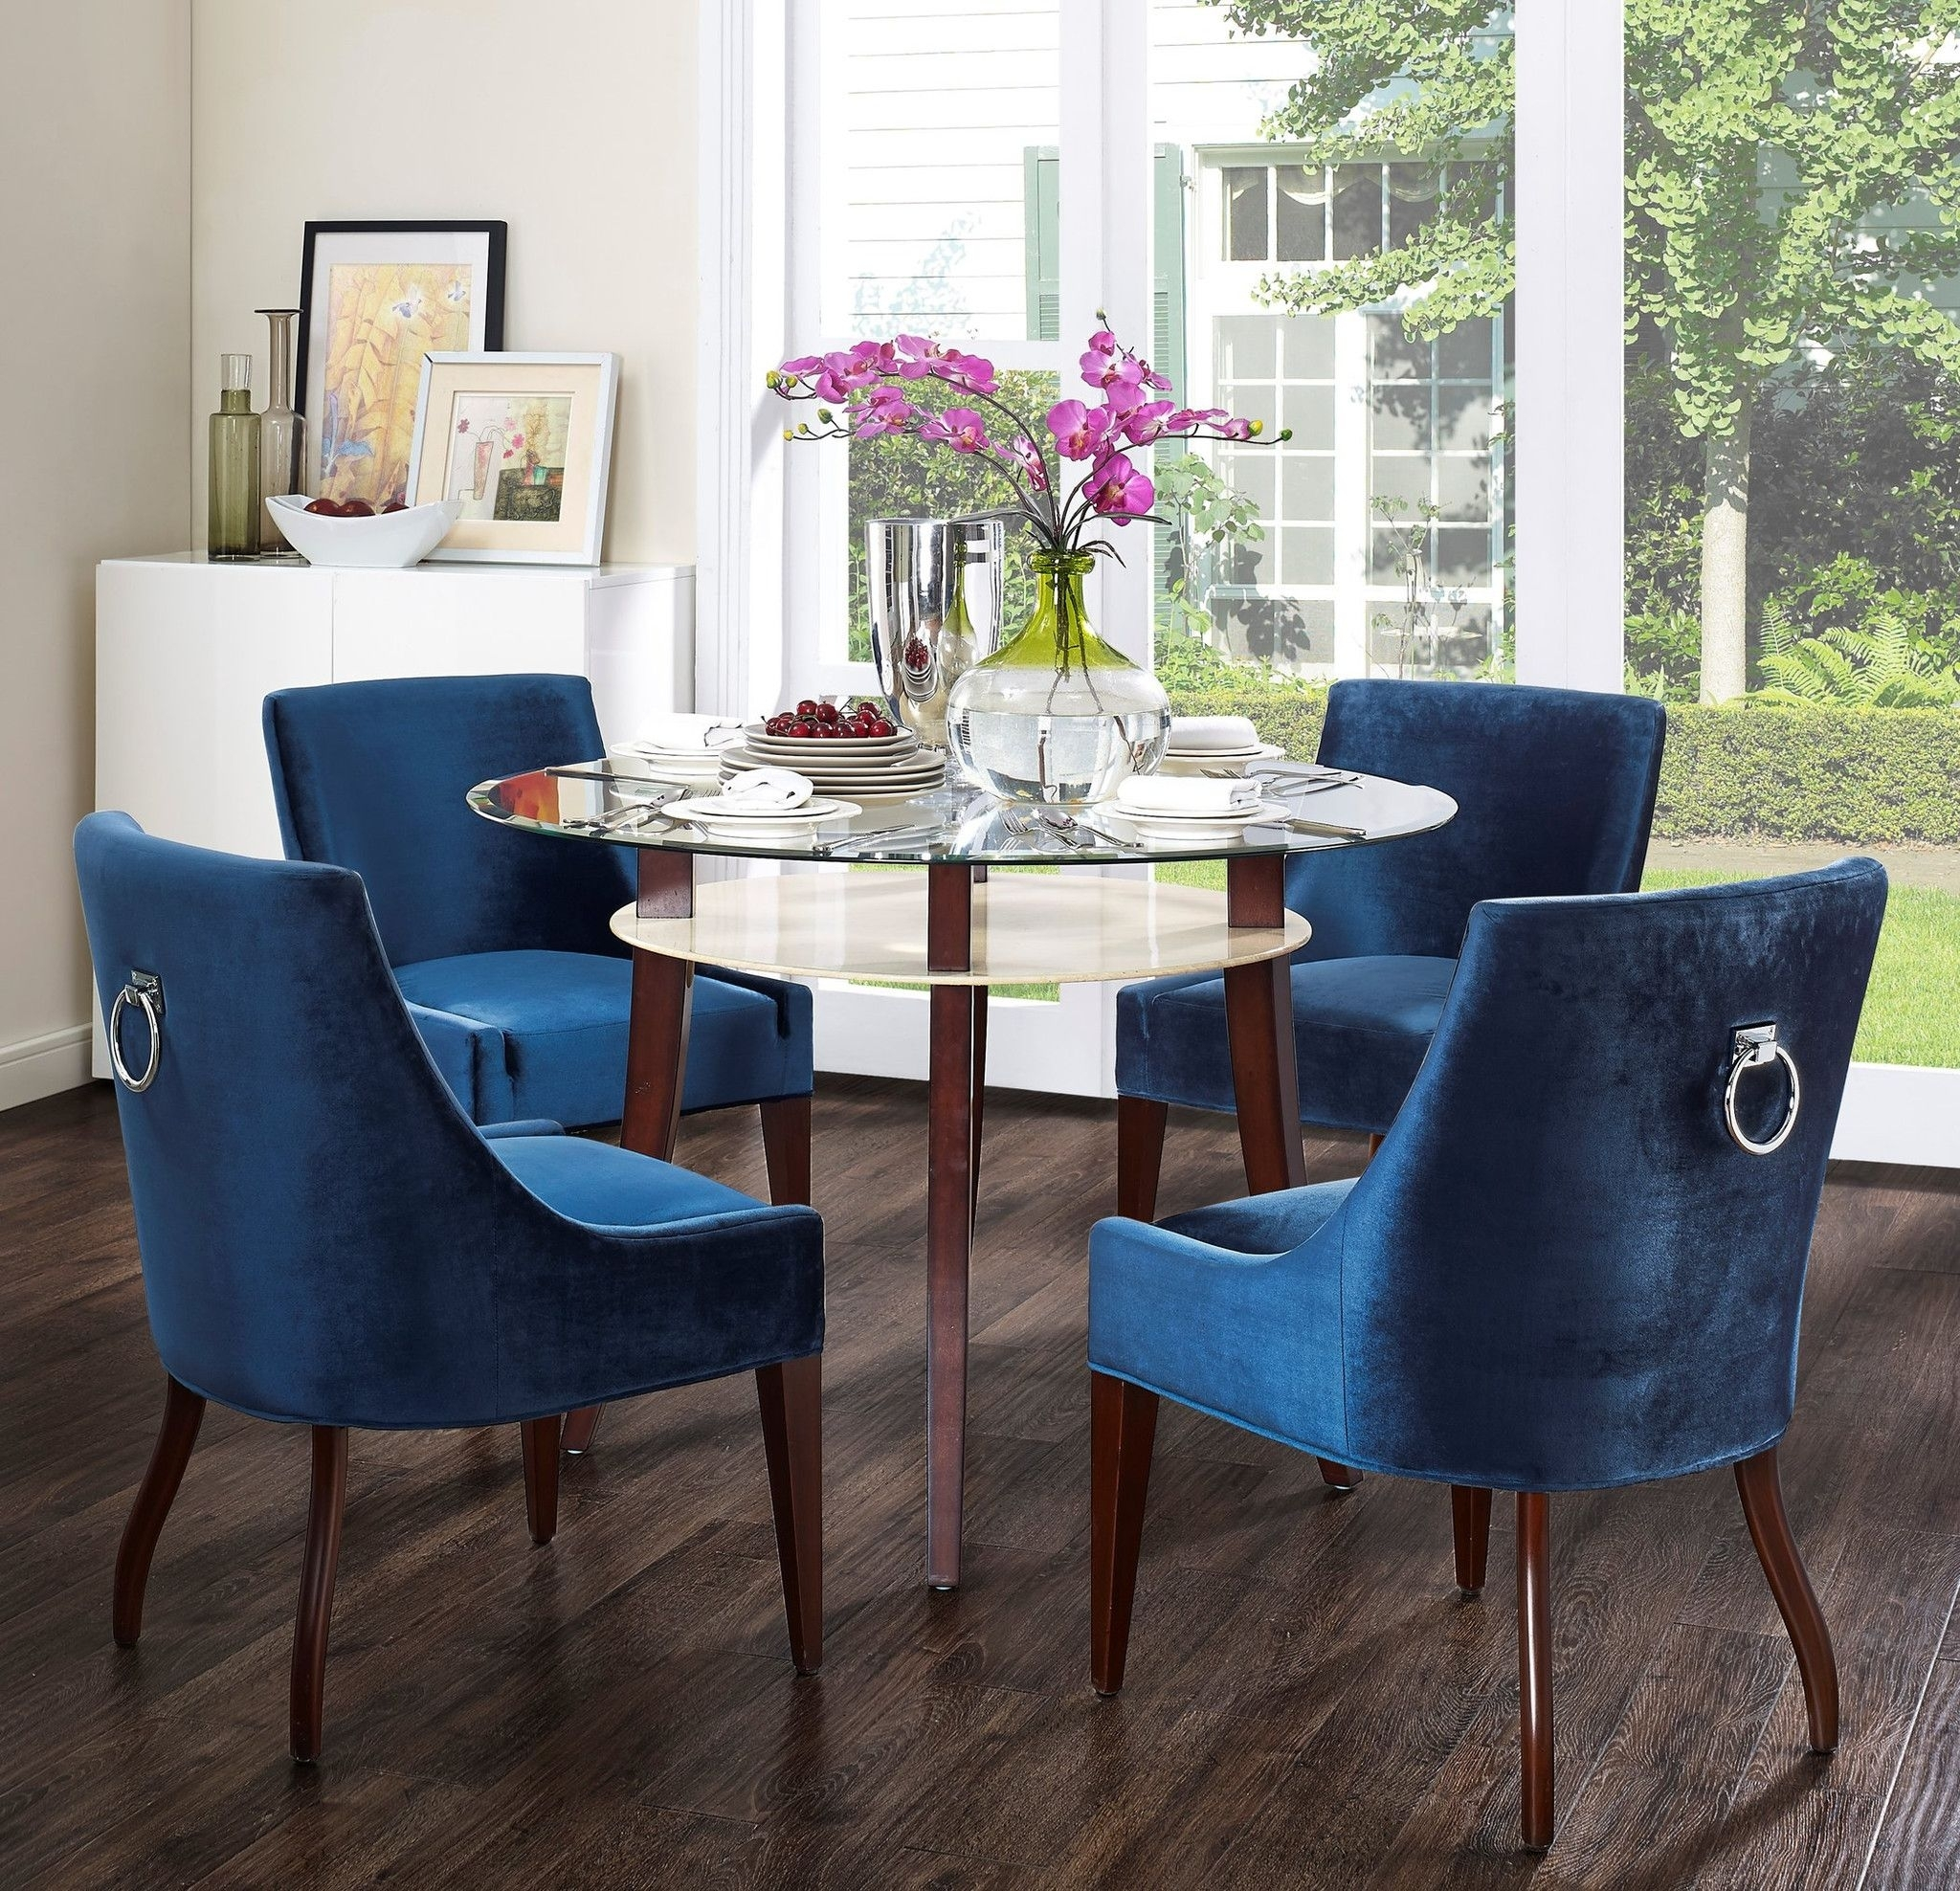 2018 Dining Chairs With Blue Loose Seat With Tov Furniture Modern Dover Blue Velvet Dining Chair Tov D35 In  (View 1 of 20)